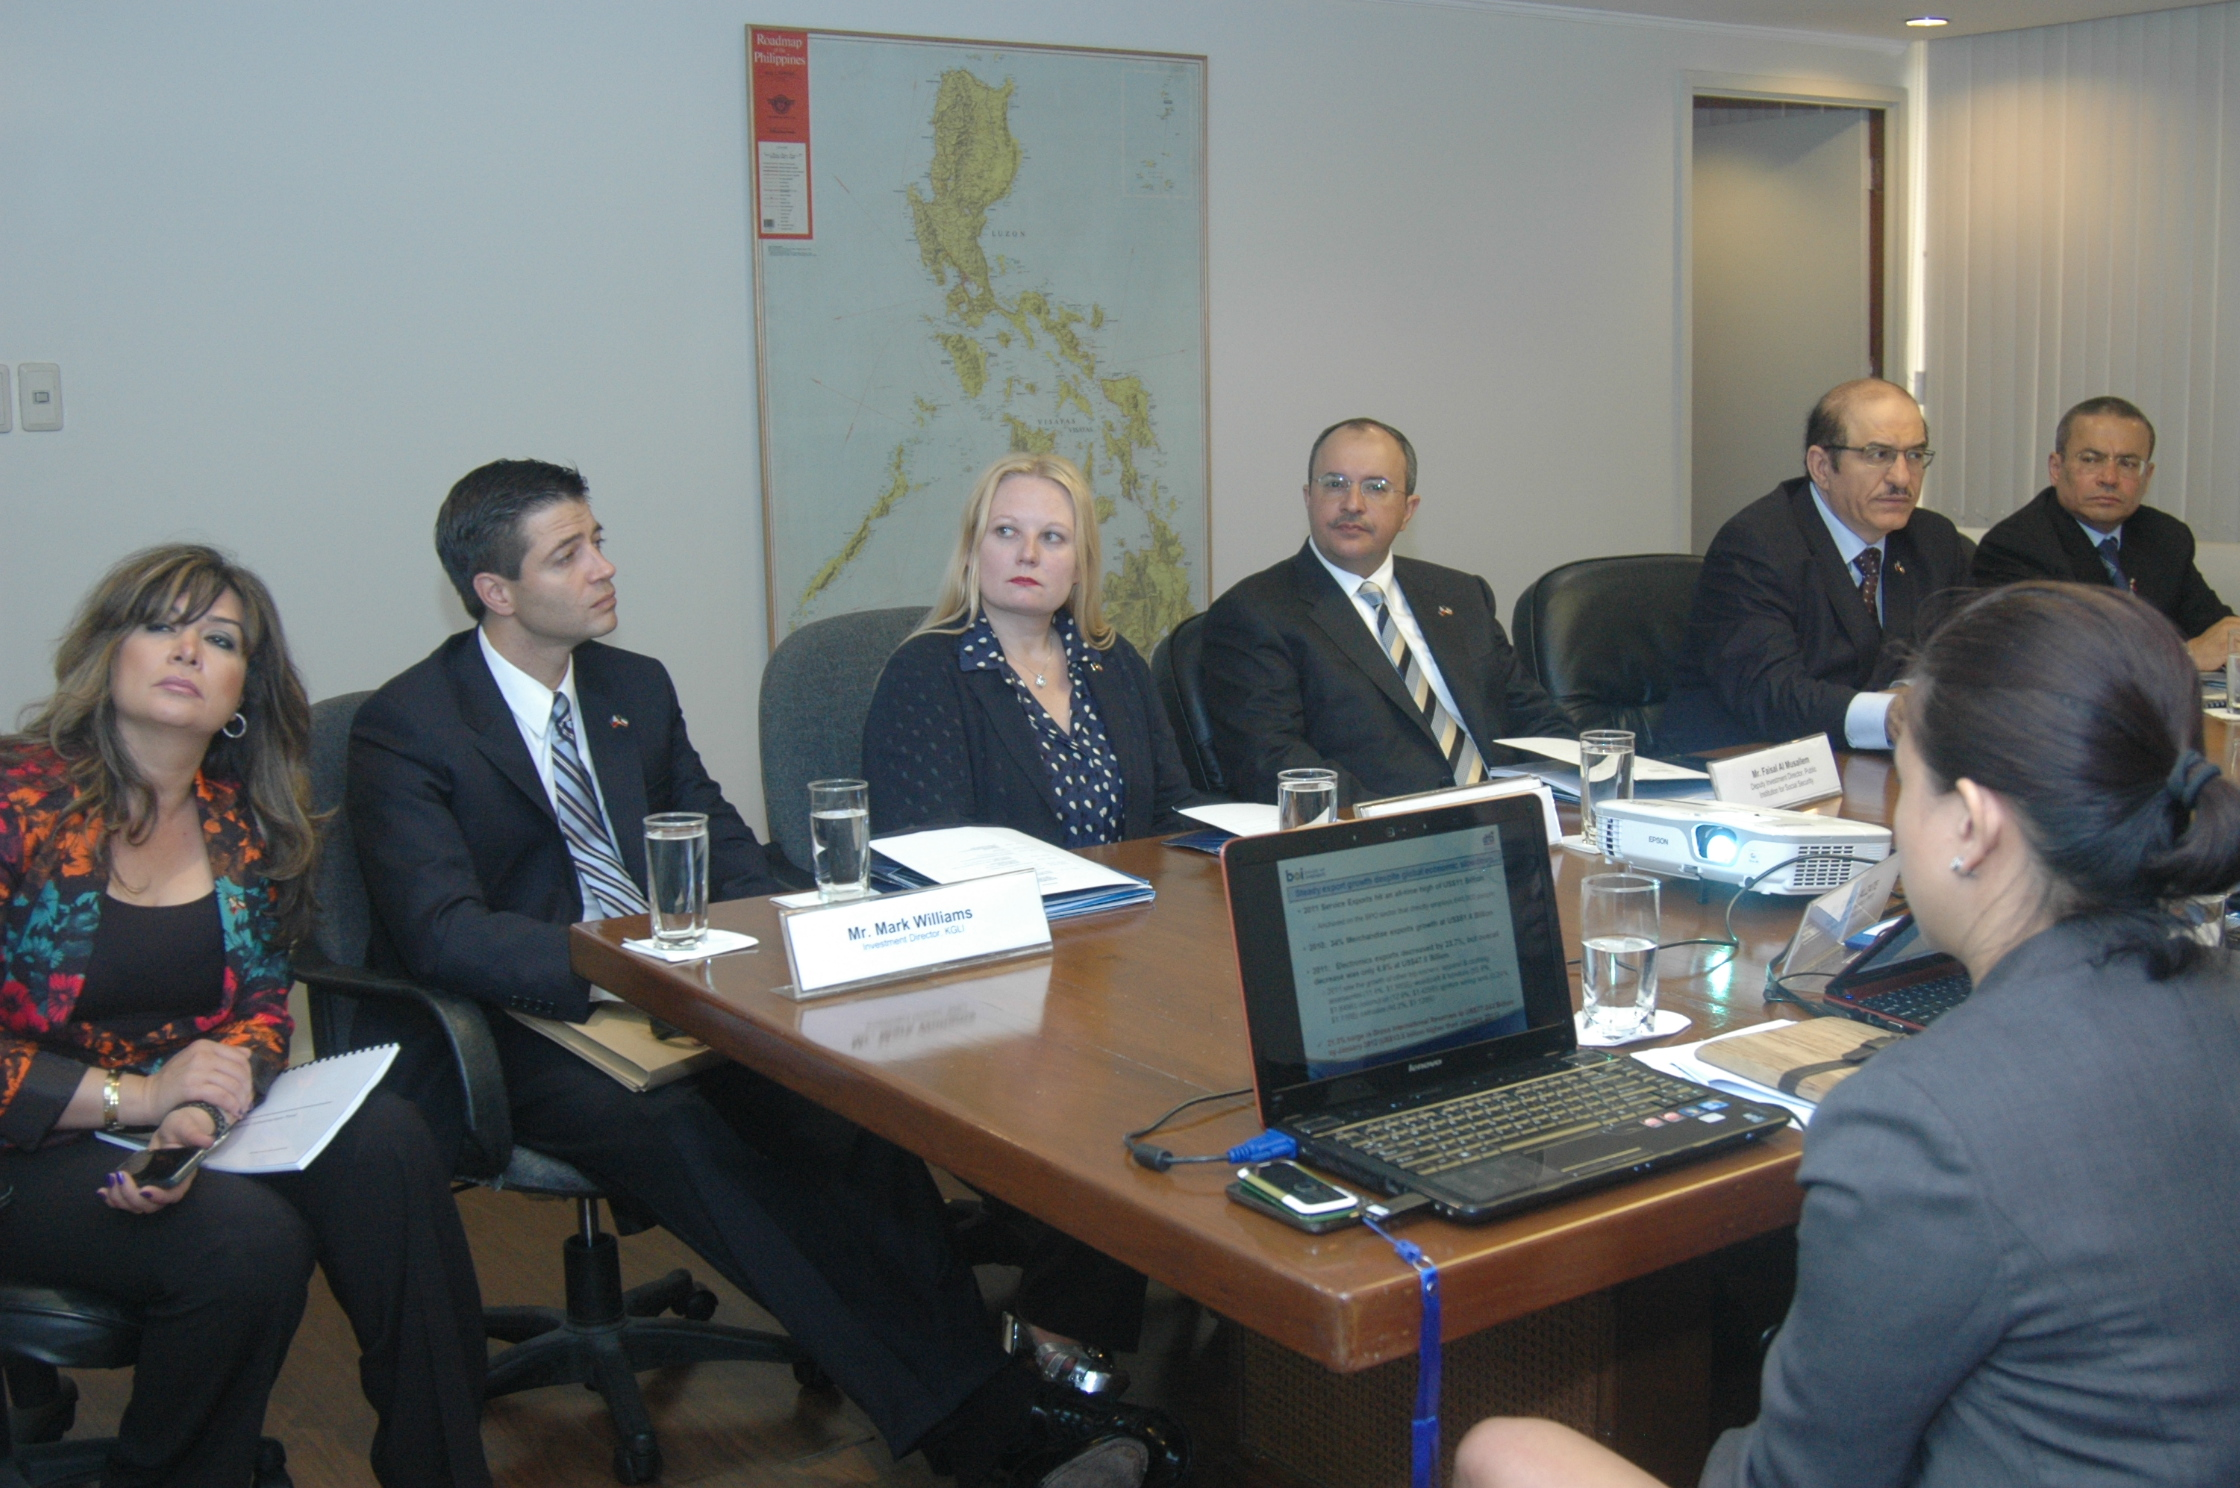 Marsha Lazareva (third from left) attends a meeting related to the naming of the Global Gateway Logistics City in honor of the Amir of Kuwait in March 2012. Courtesty of KGL Investment